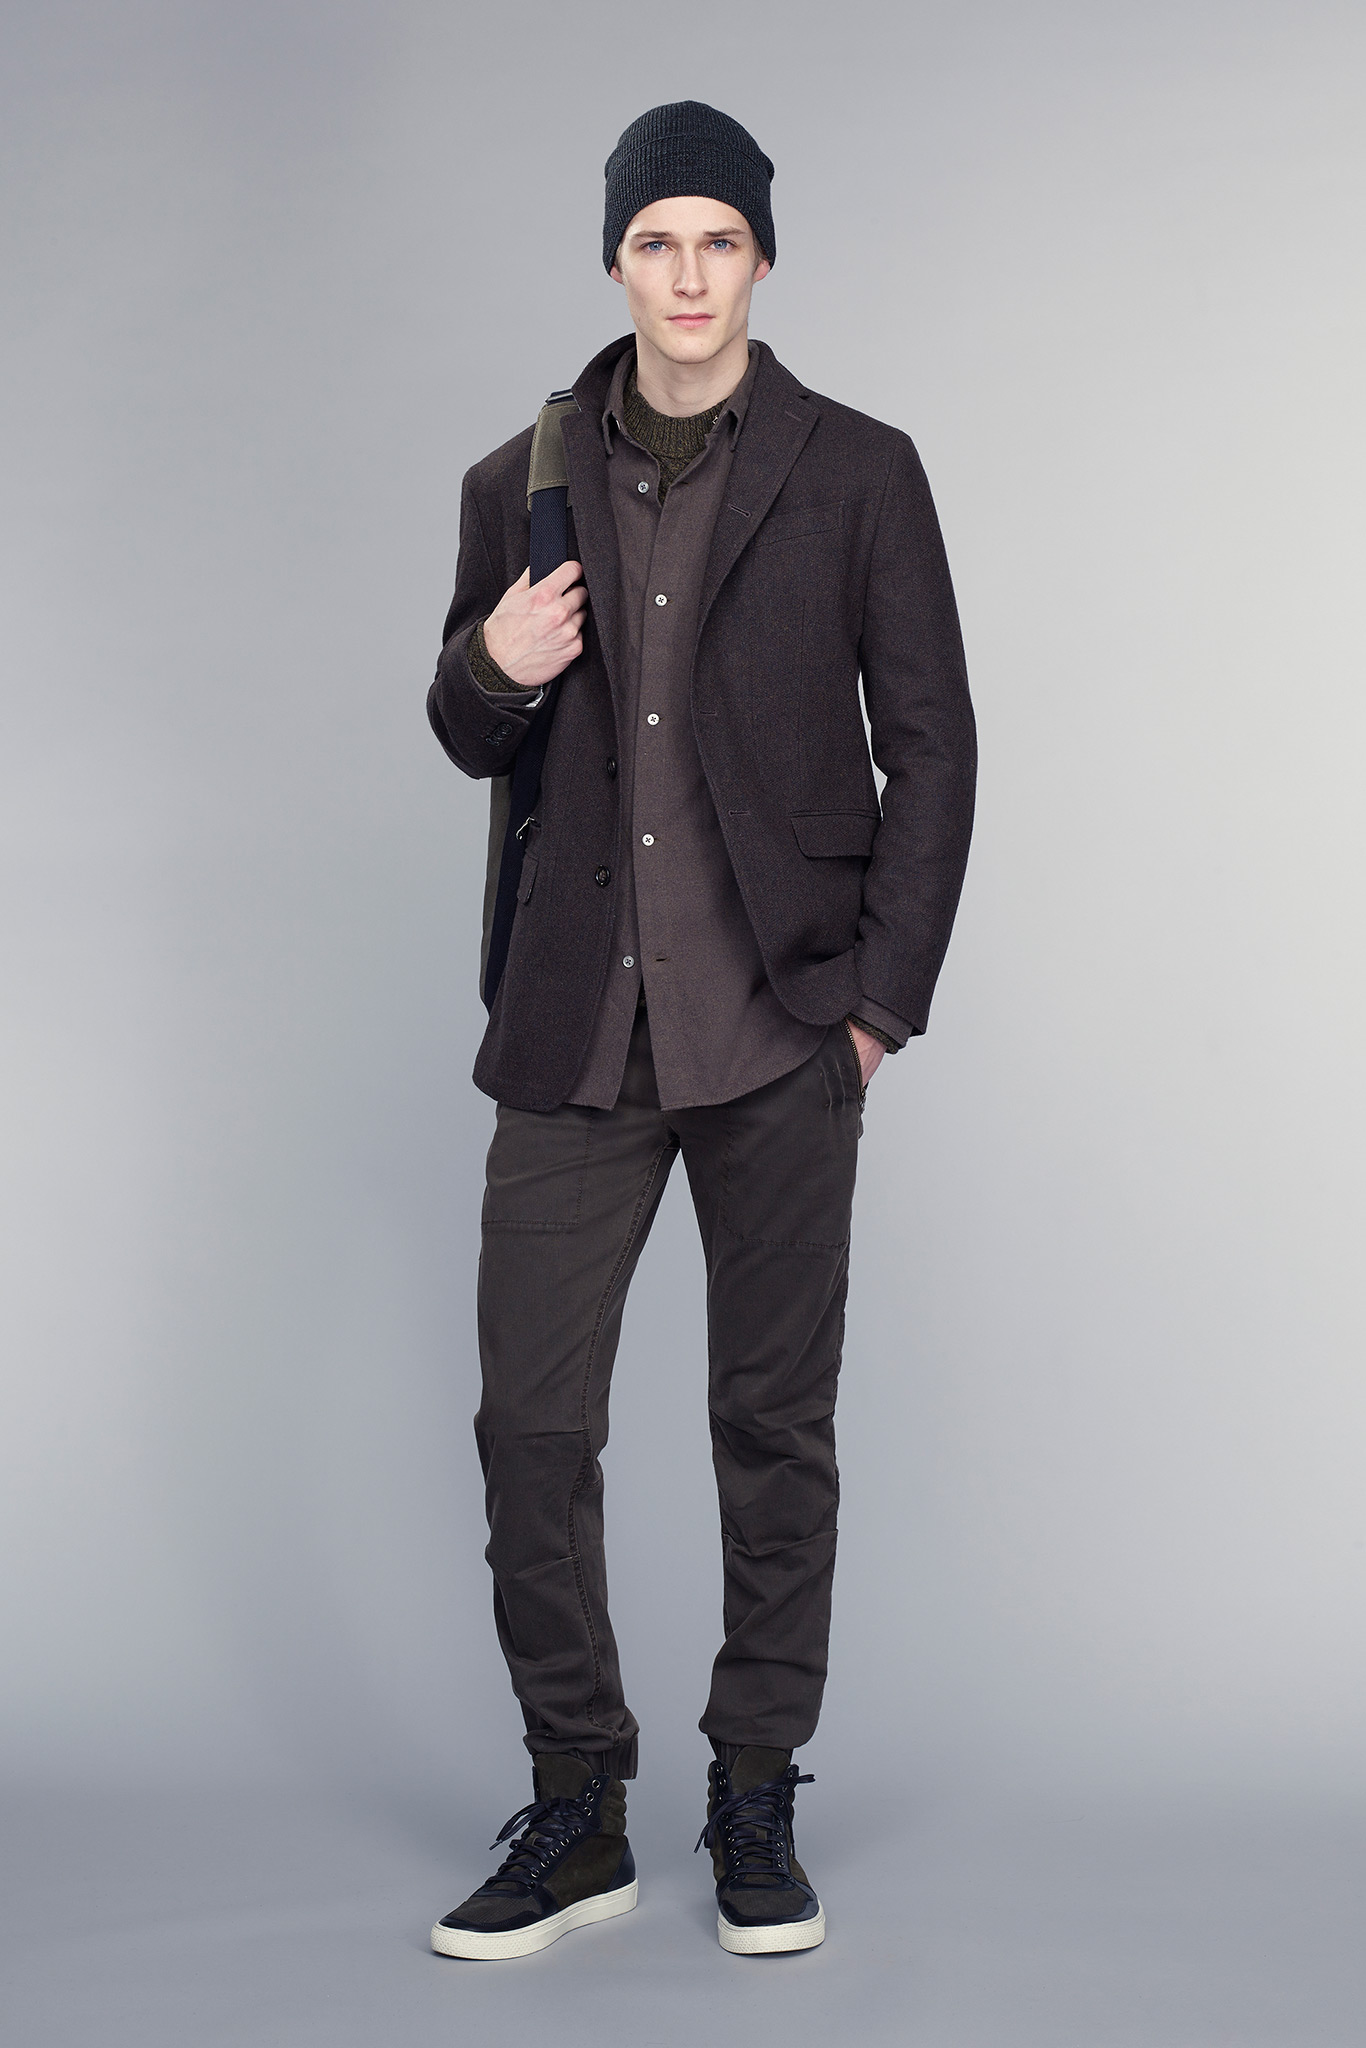 Banana-Republic-Fall-Winter-2015-2016-Mens-Collection-9